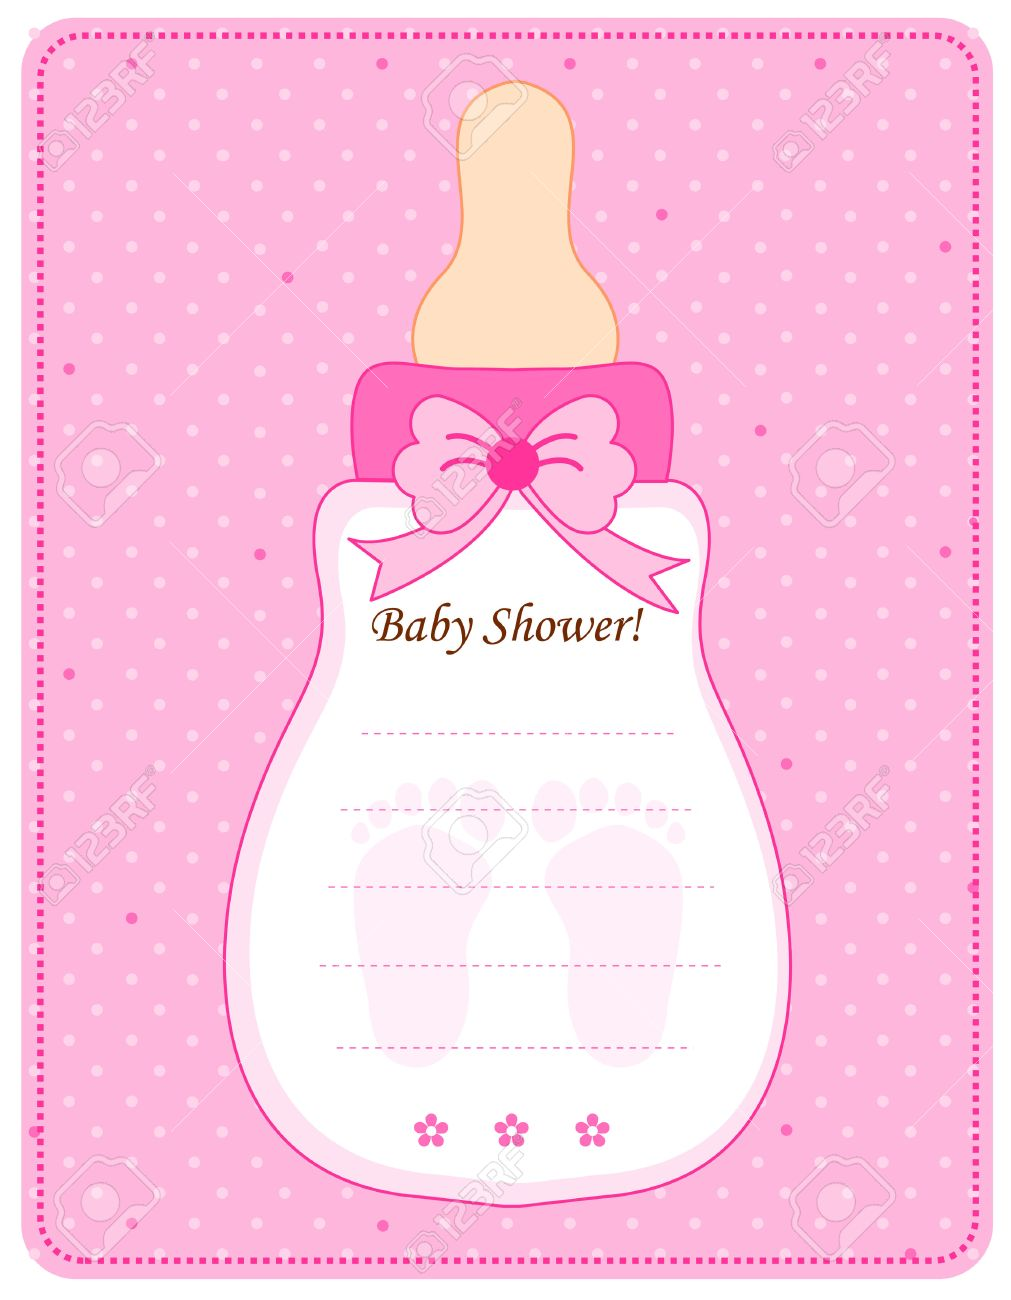 cute feeding bottle shaped baby shower invitation card template in pink for baby girls stock photo